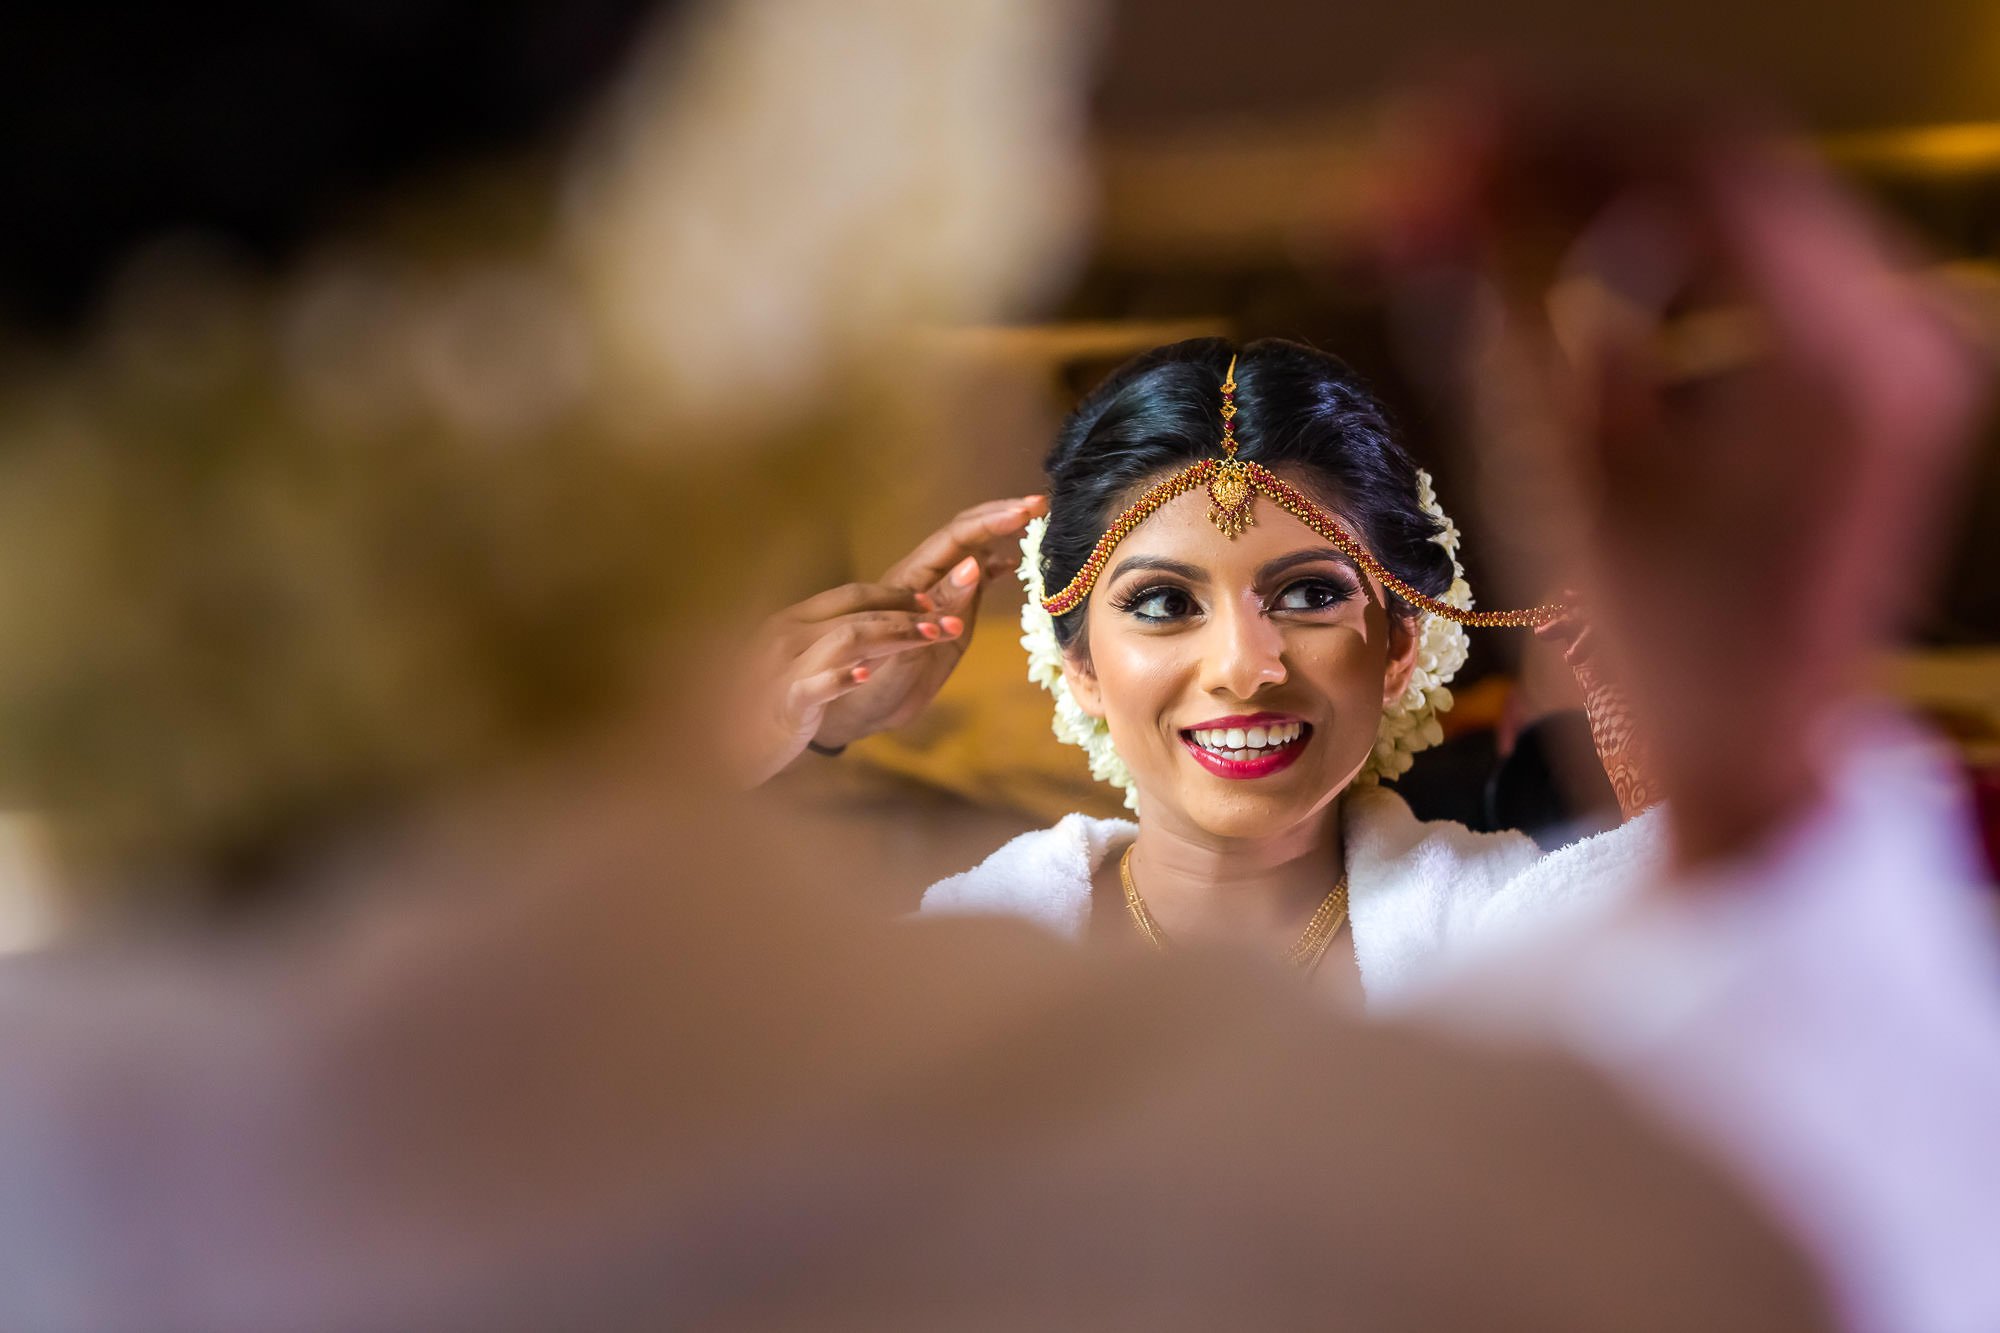 asian-wedding-hindu-tamil-photographer-heythorpe-oxford-0016.jpg